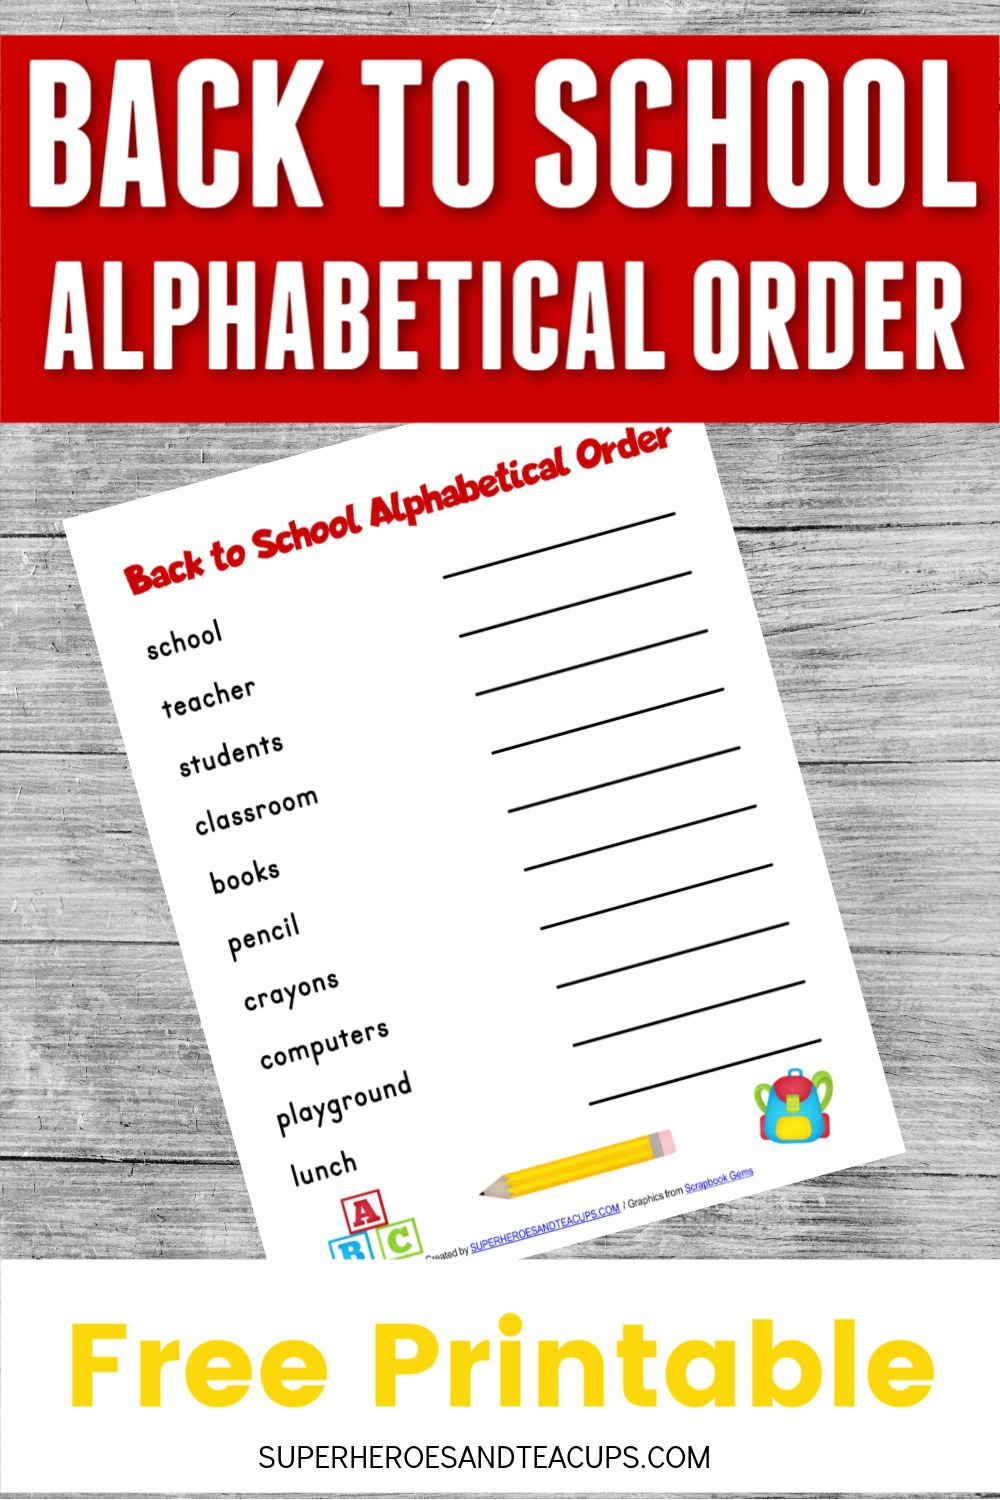 Back to School Alphabetical Order Free Printable